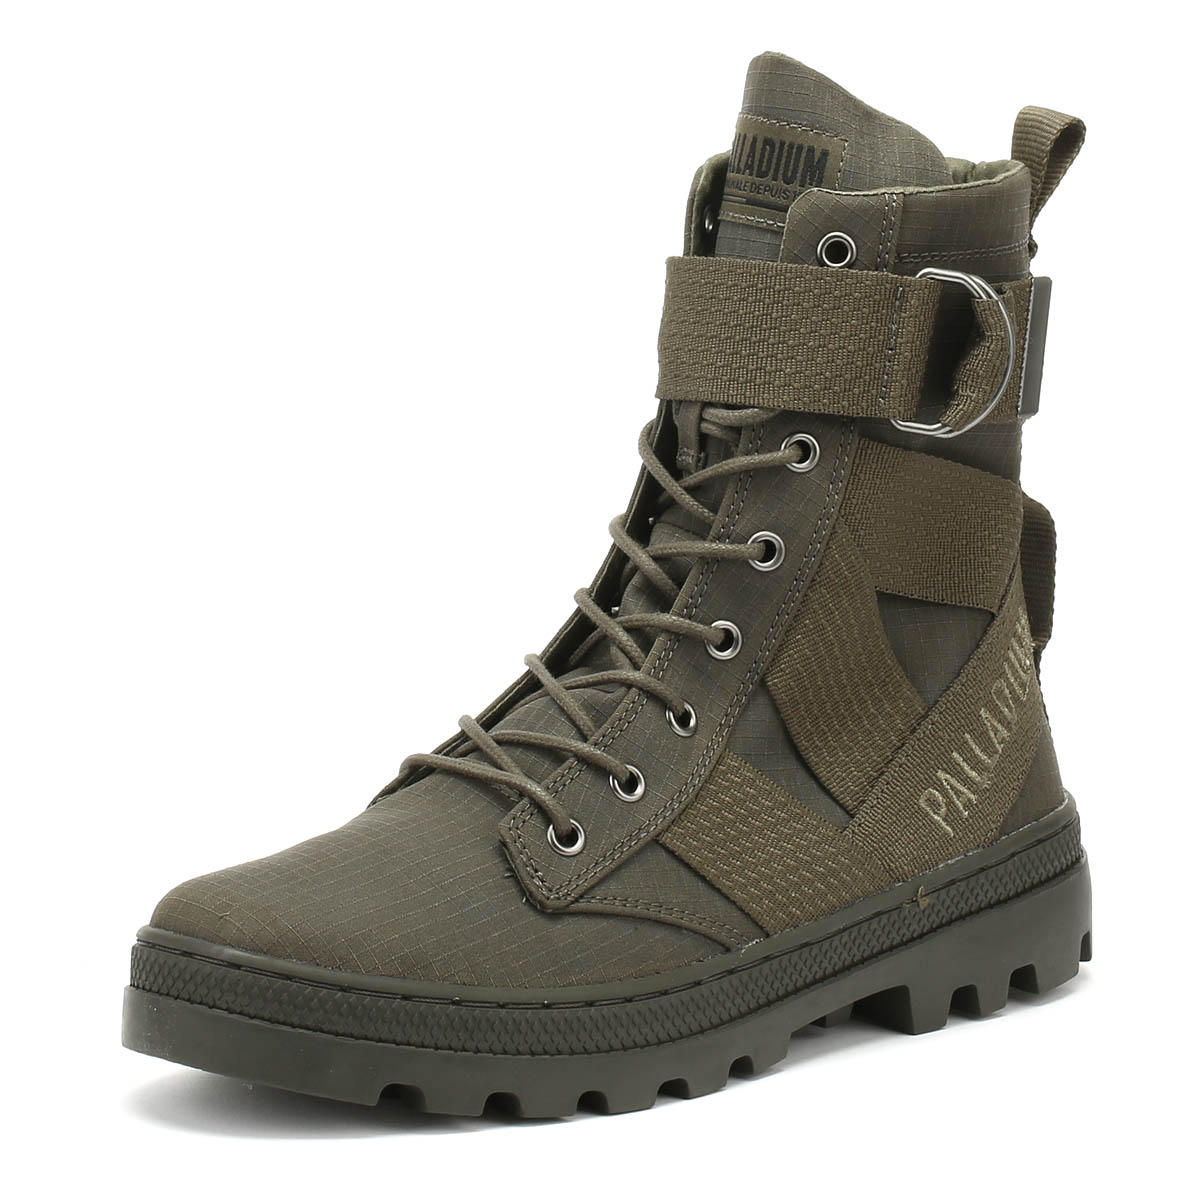 2ac380dfa88 PALLADIUM PALLABOSSE TACT St Womens Boots Olive Green Ladies Warm WInter  Shoes